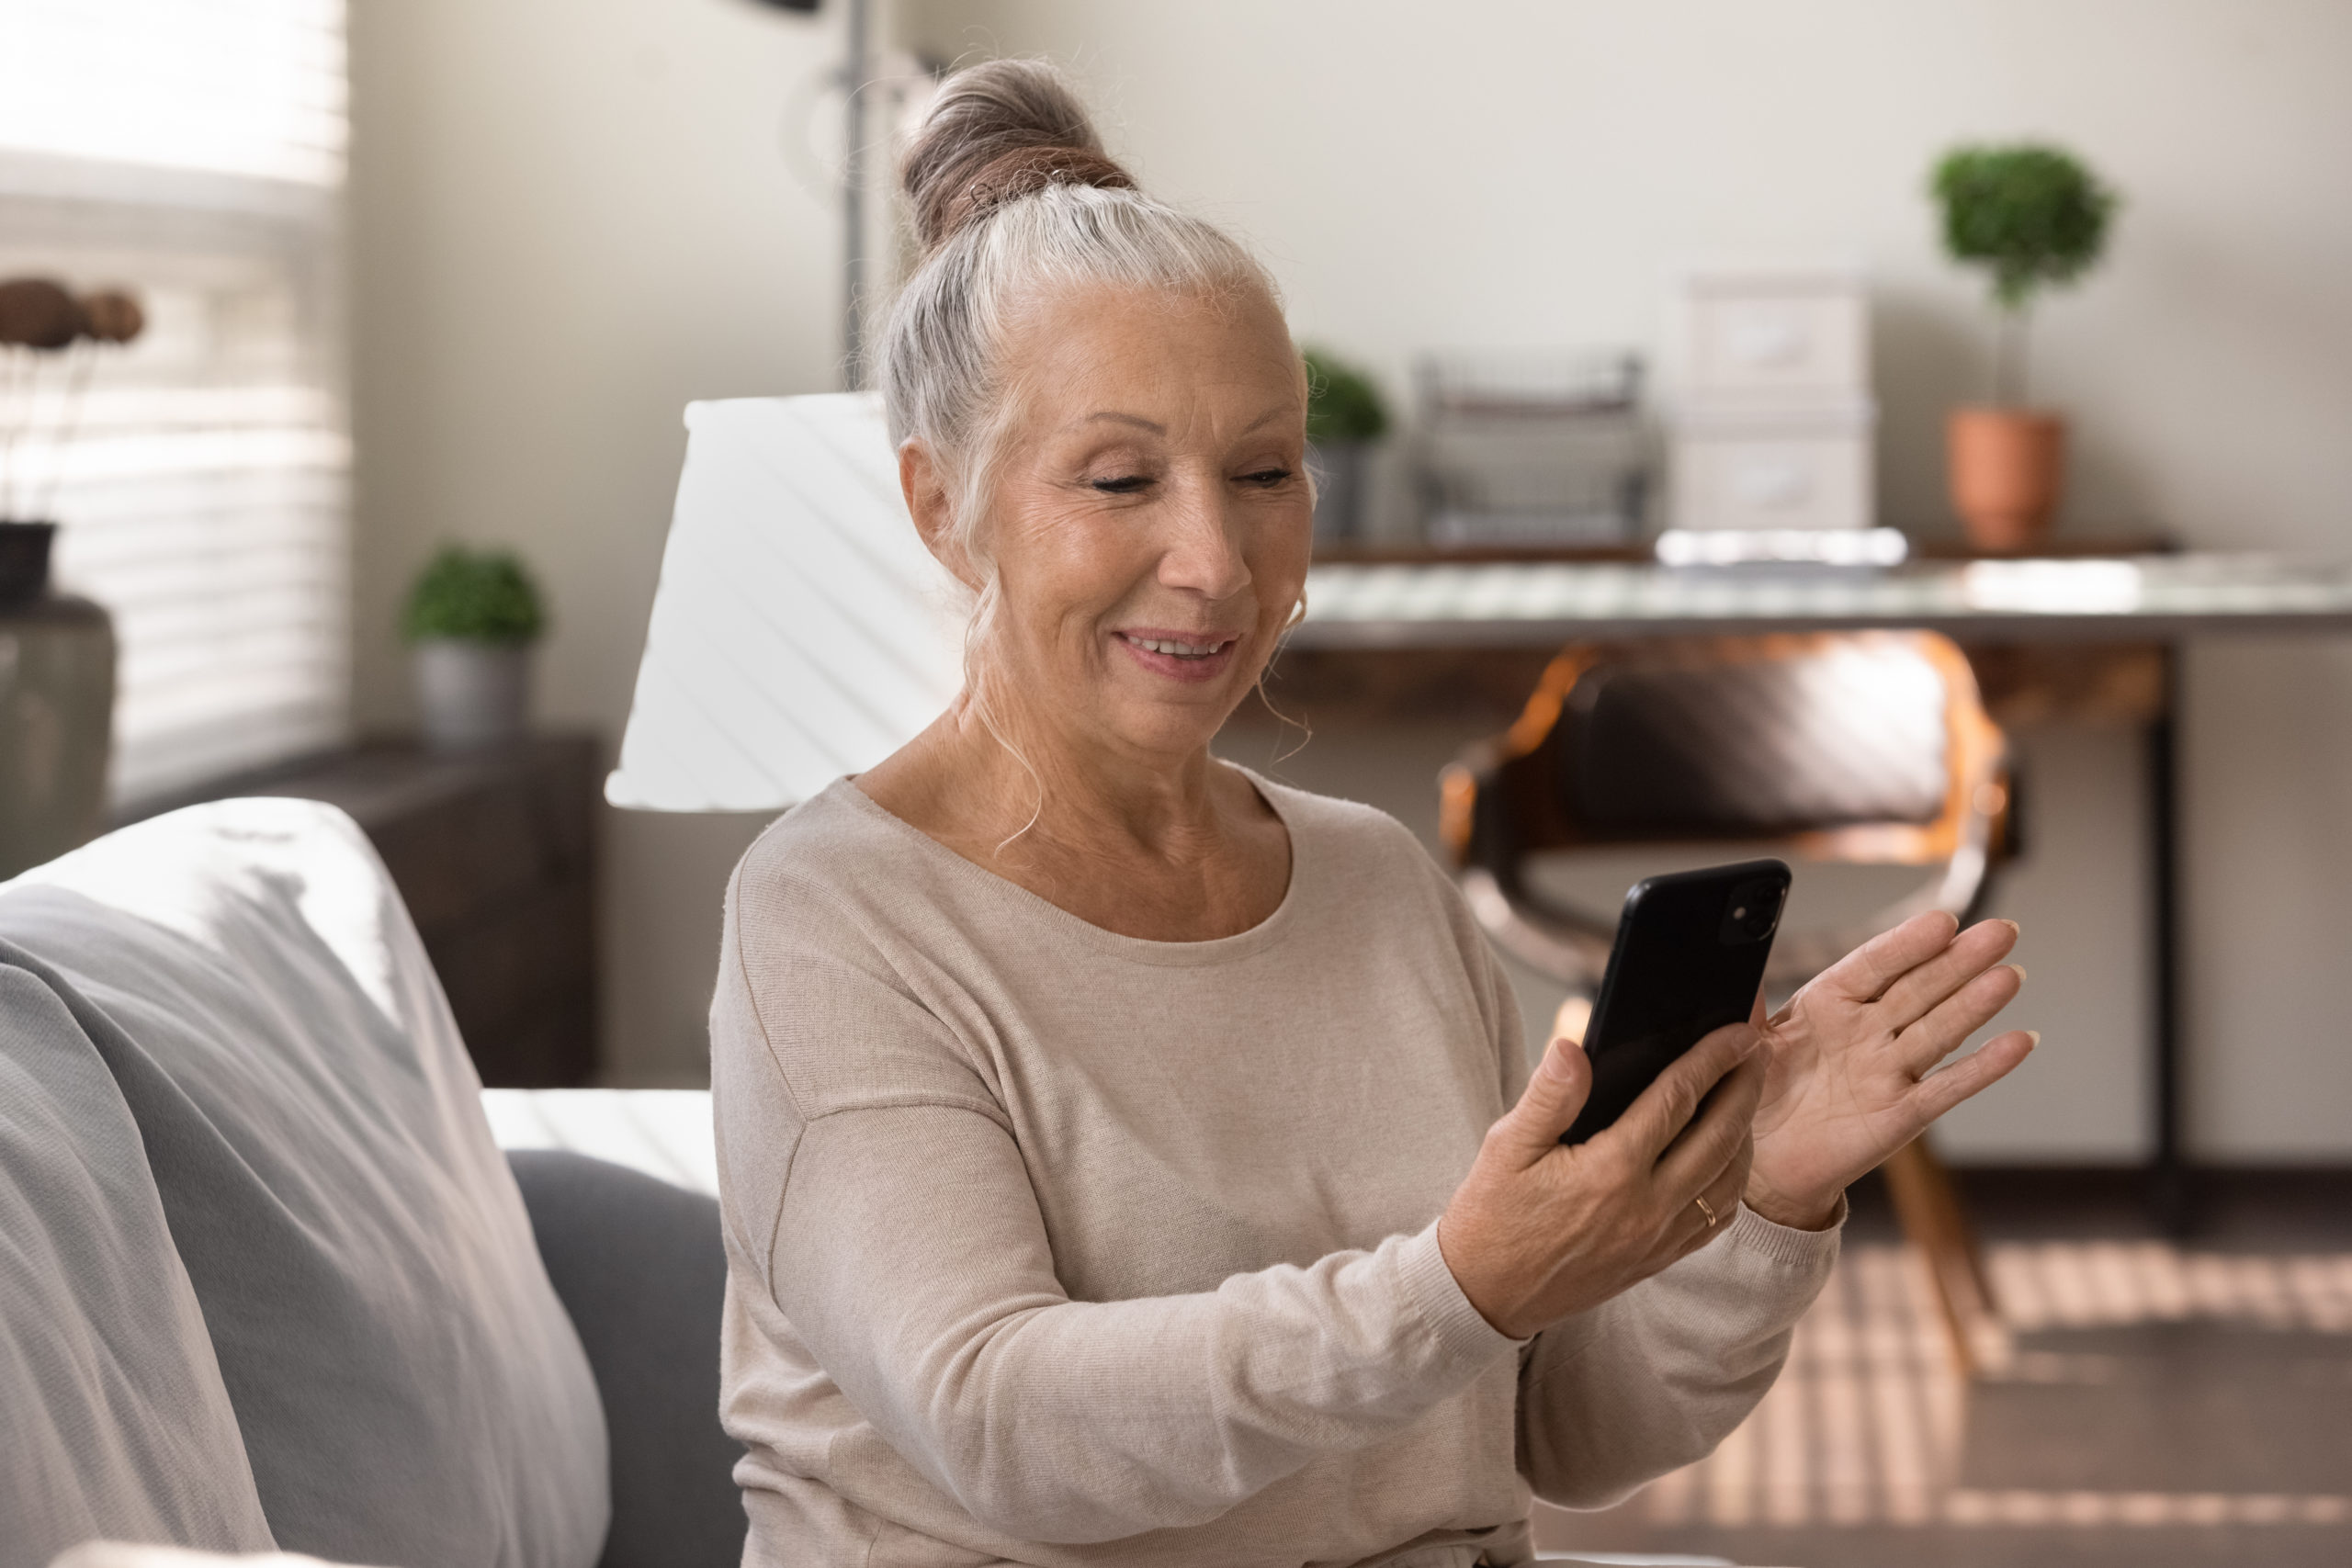 Happy elderly lady using smartphone at home, making video call